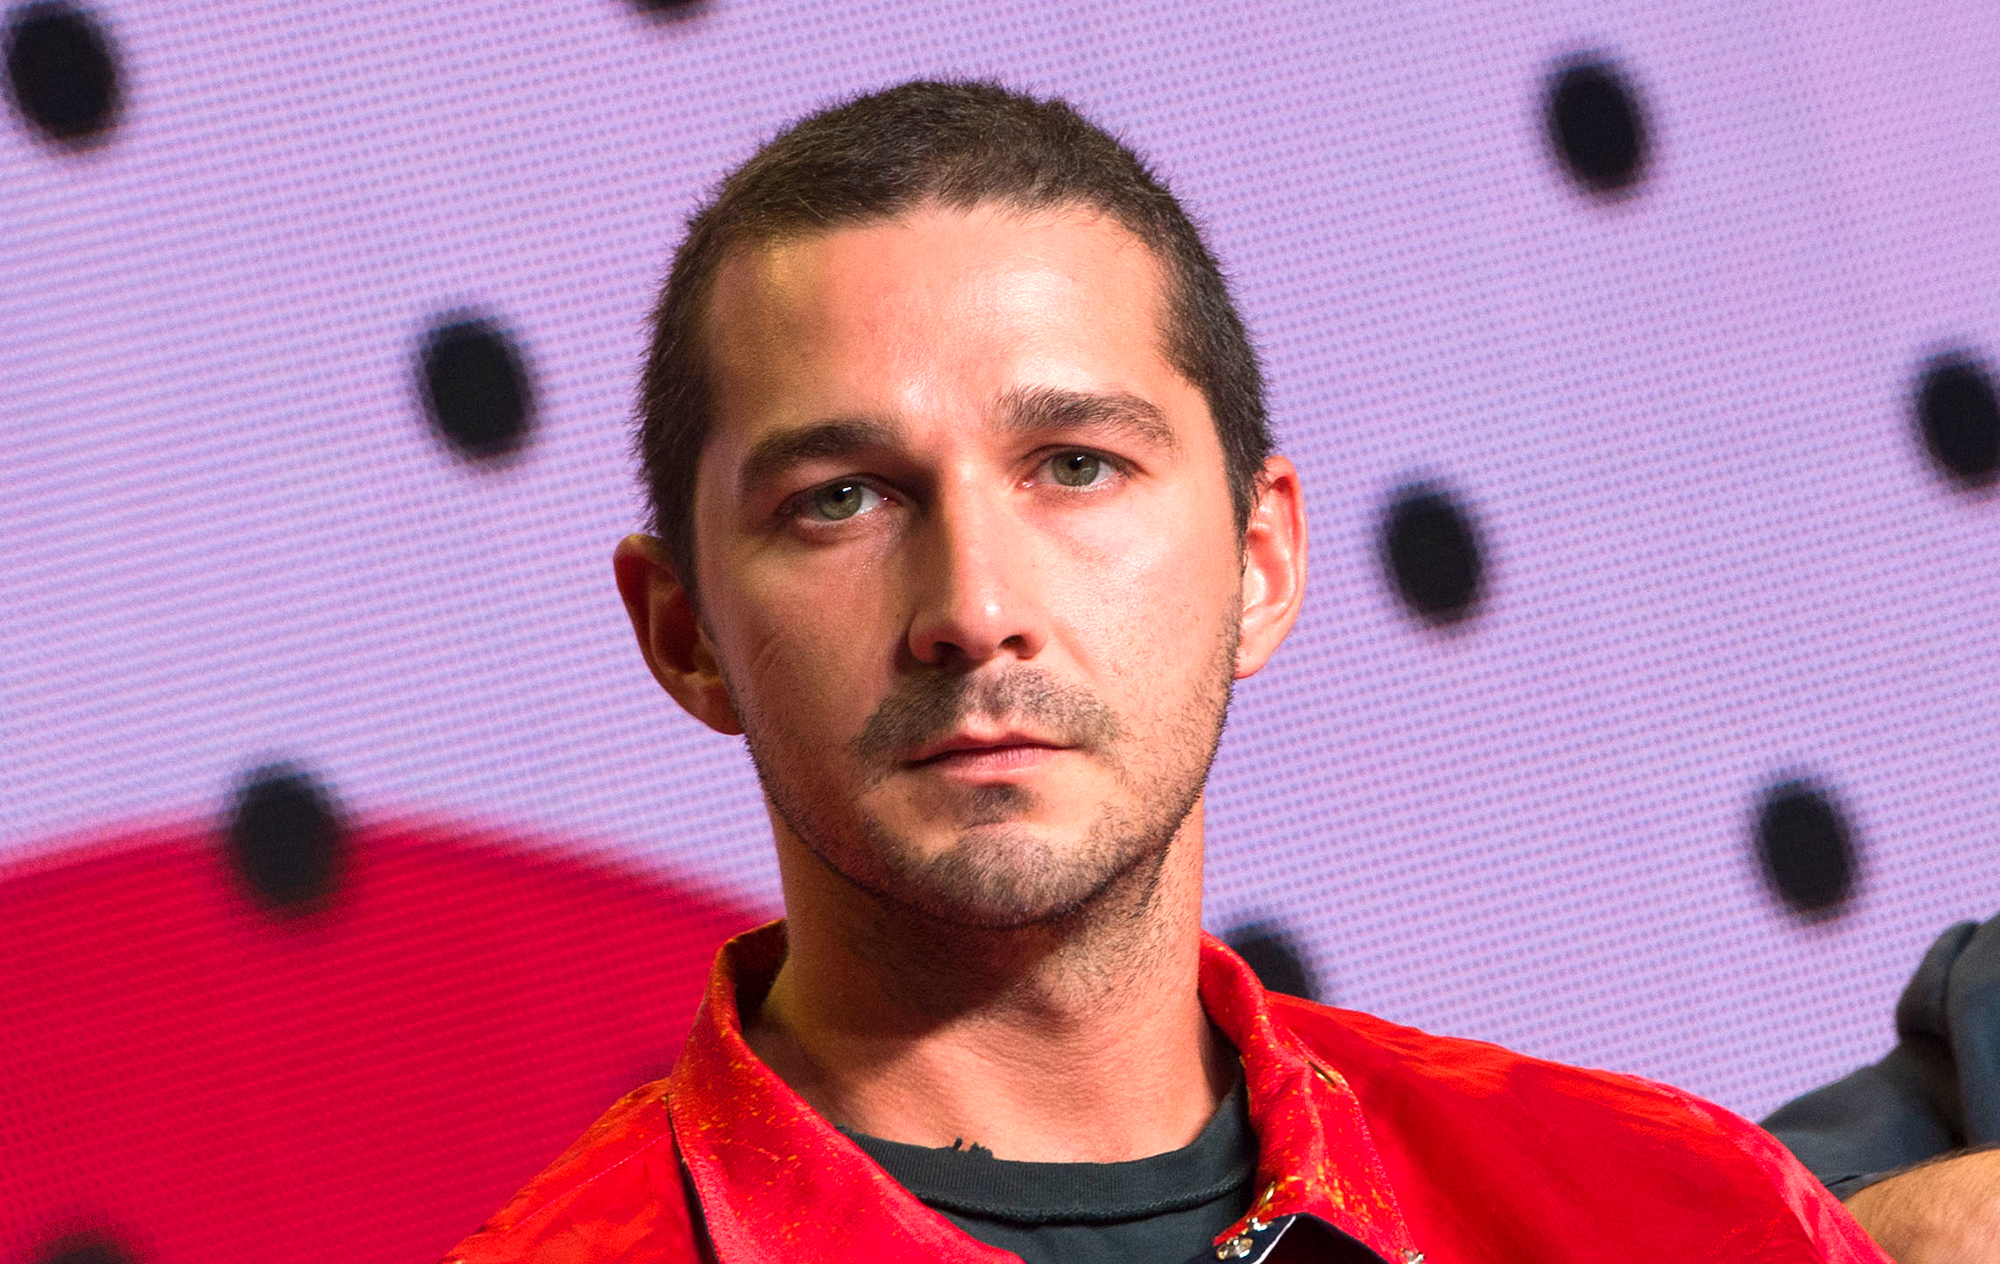 Shia LaBeouf on Georgia arrest: 'I f-ked up'